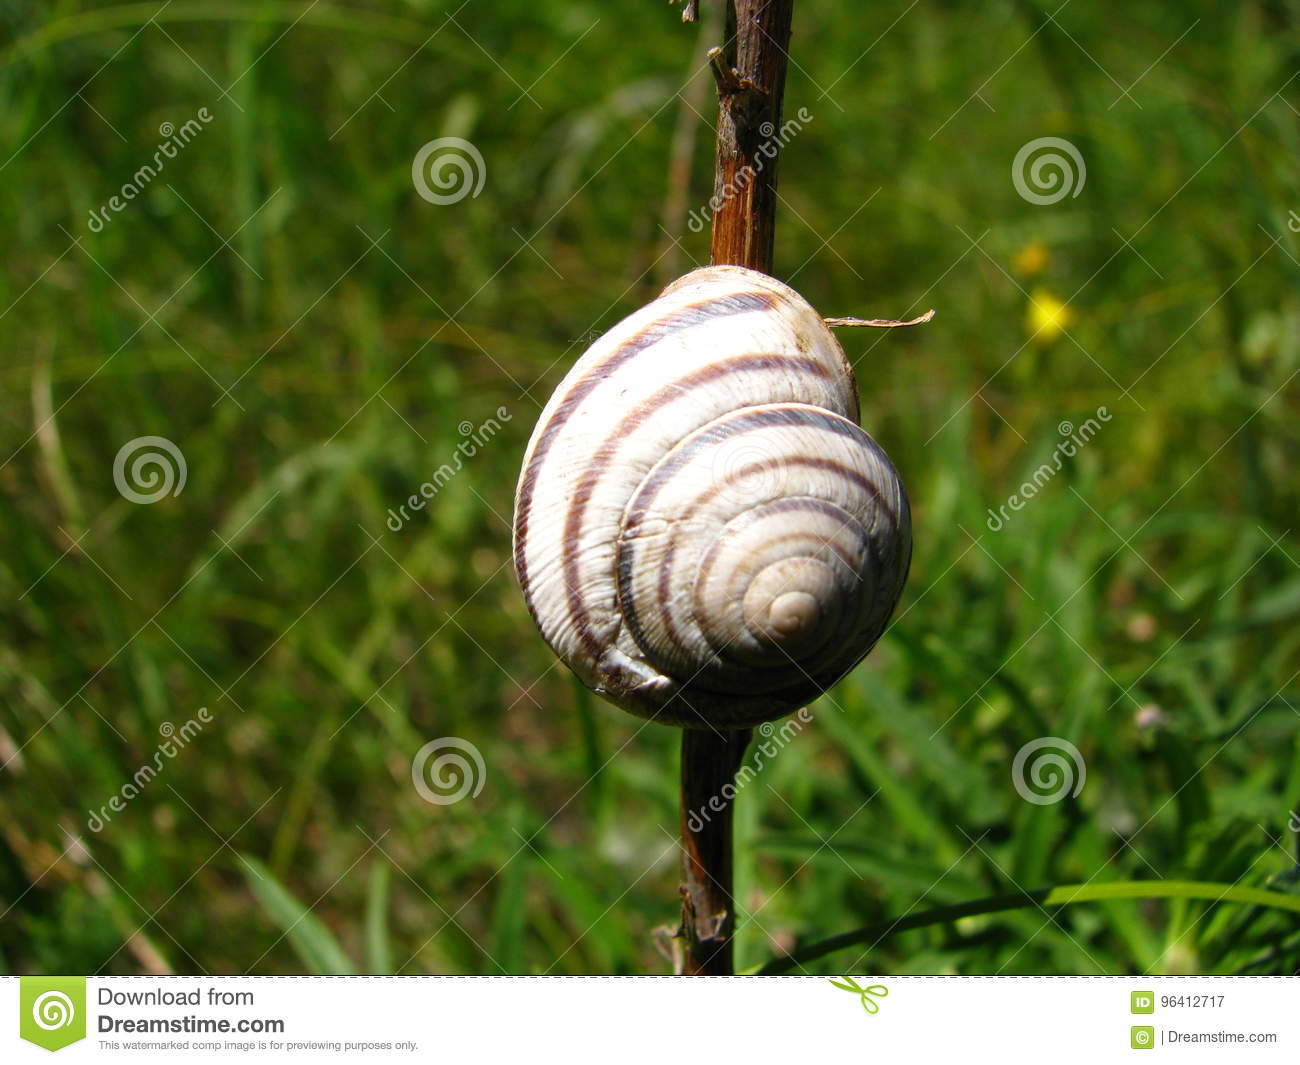 Little House Of The Snail Stock Image Grass